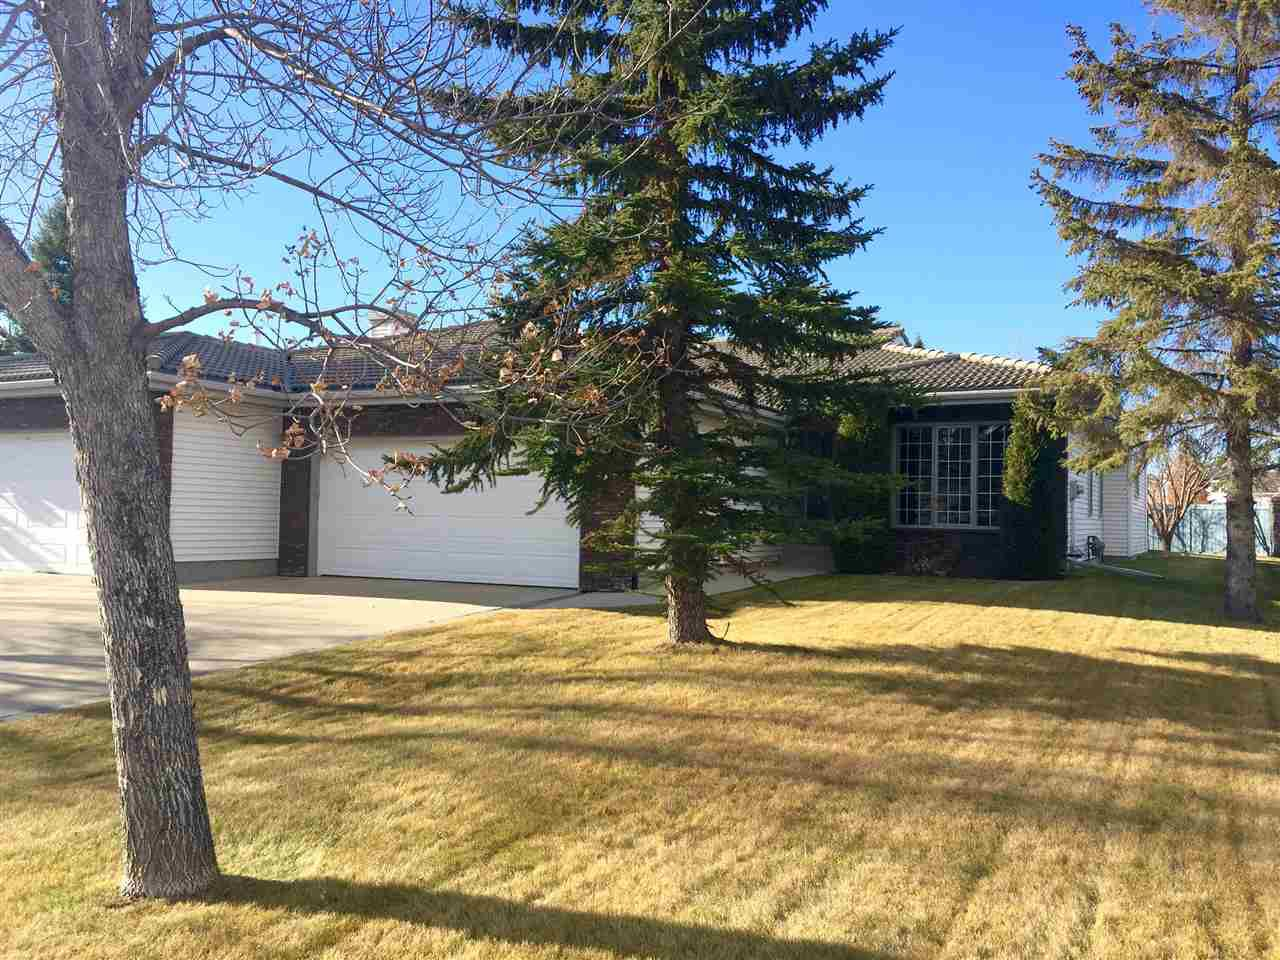 Main Photo: 238 COUNTRY CLUB Point in Edmonton: Zone 22 House Half Duplex for sale : MLS®# E4140287